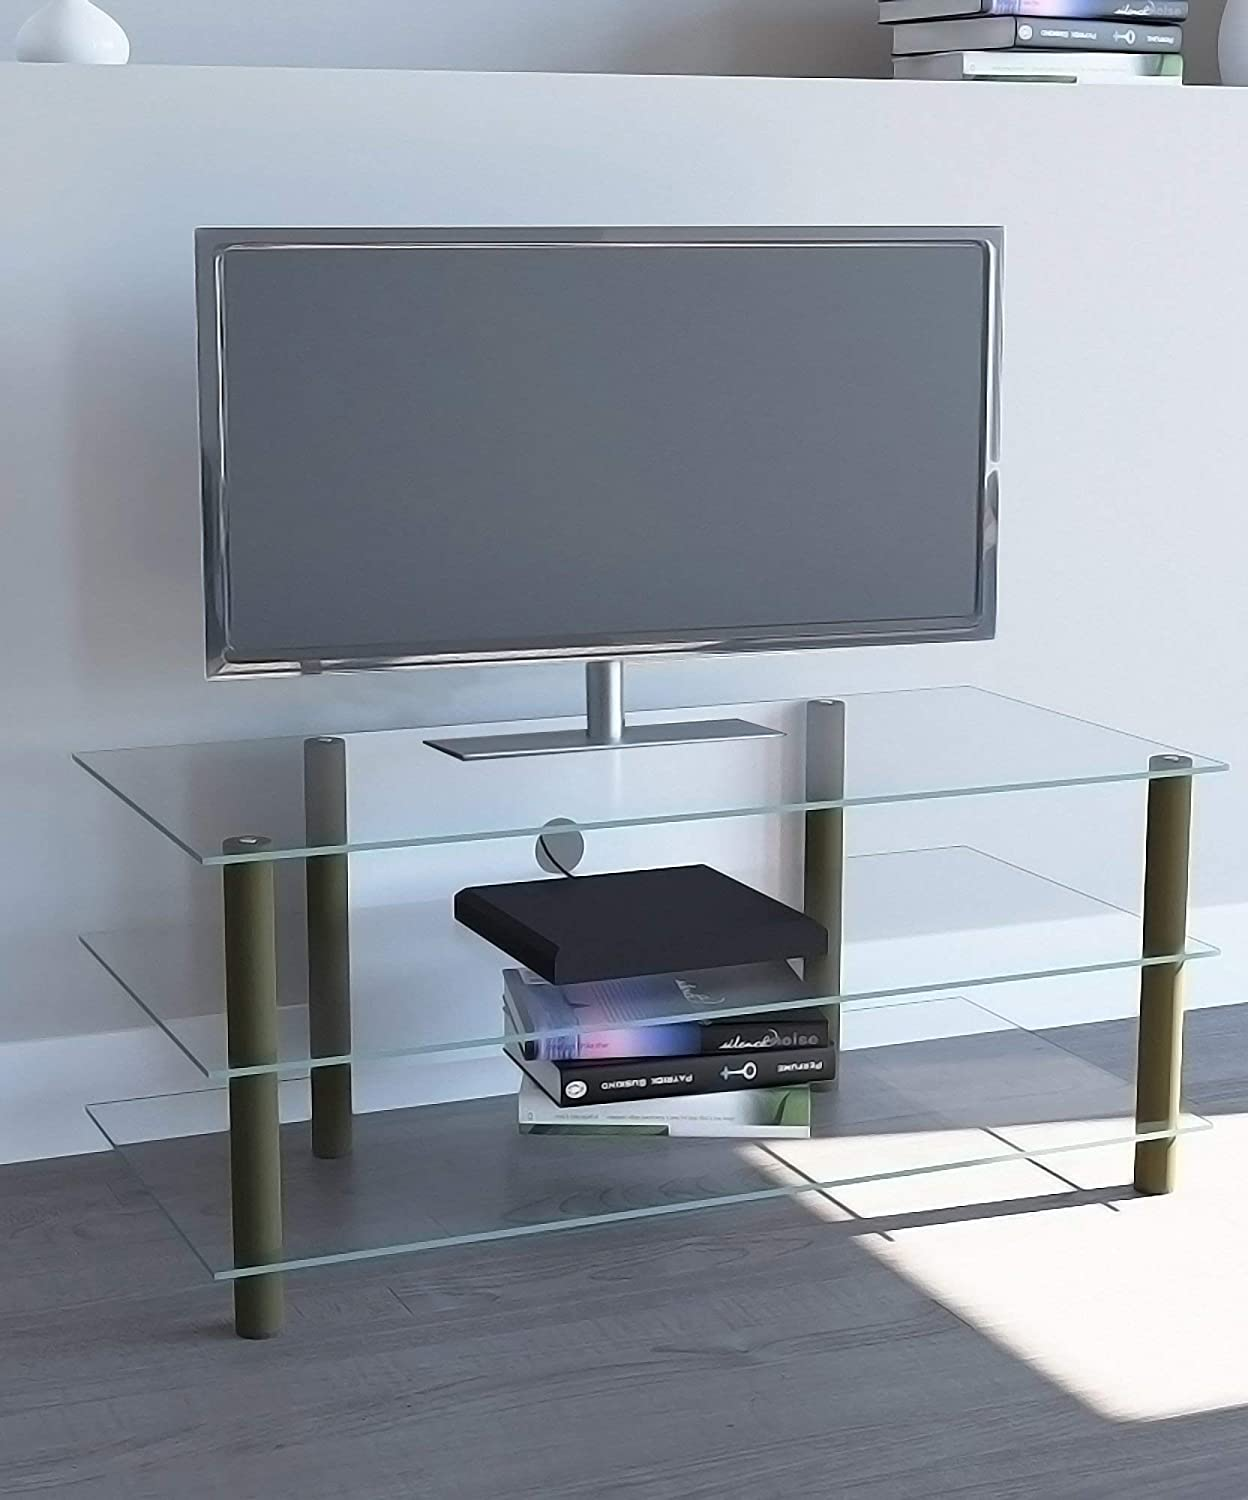 VCM TV Furniture Zumbo, Brass Plated/Clear, 12x12x12 cm